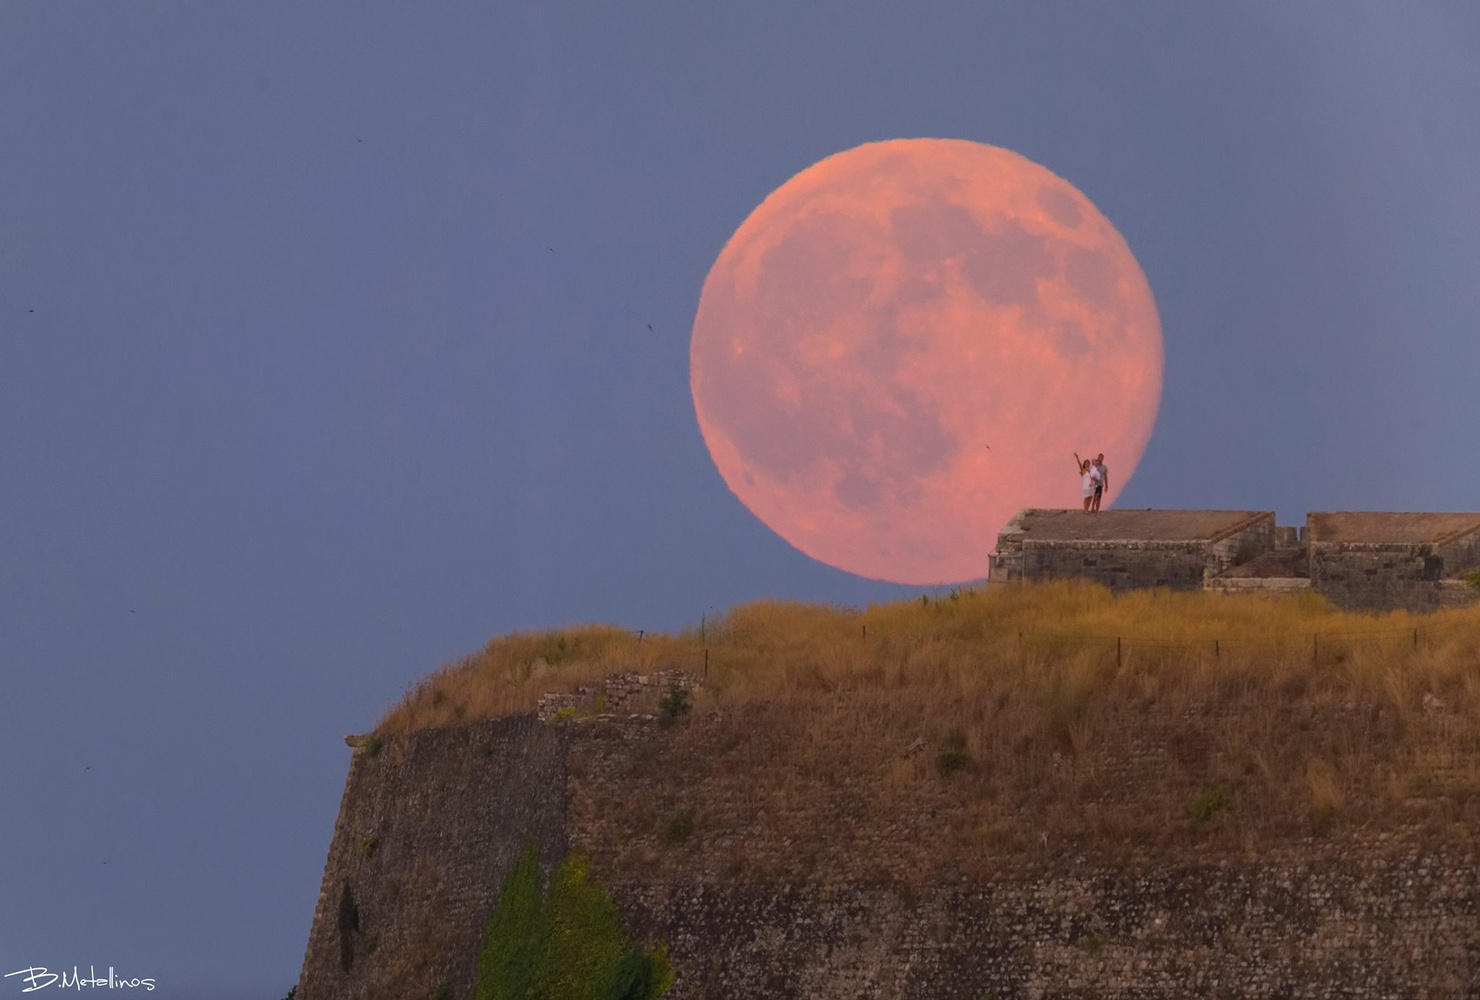 Blue Moon and my Family by Bill Metallinos